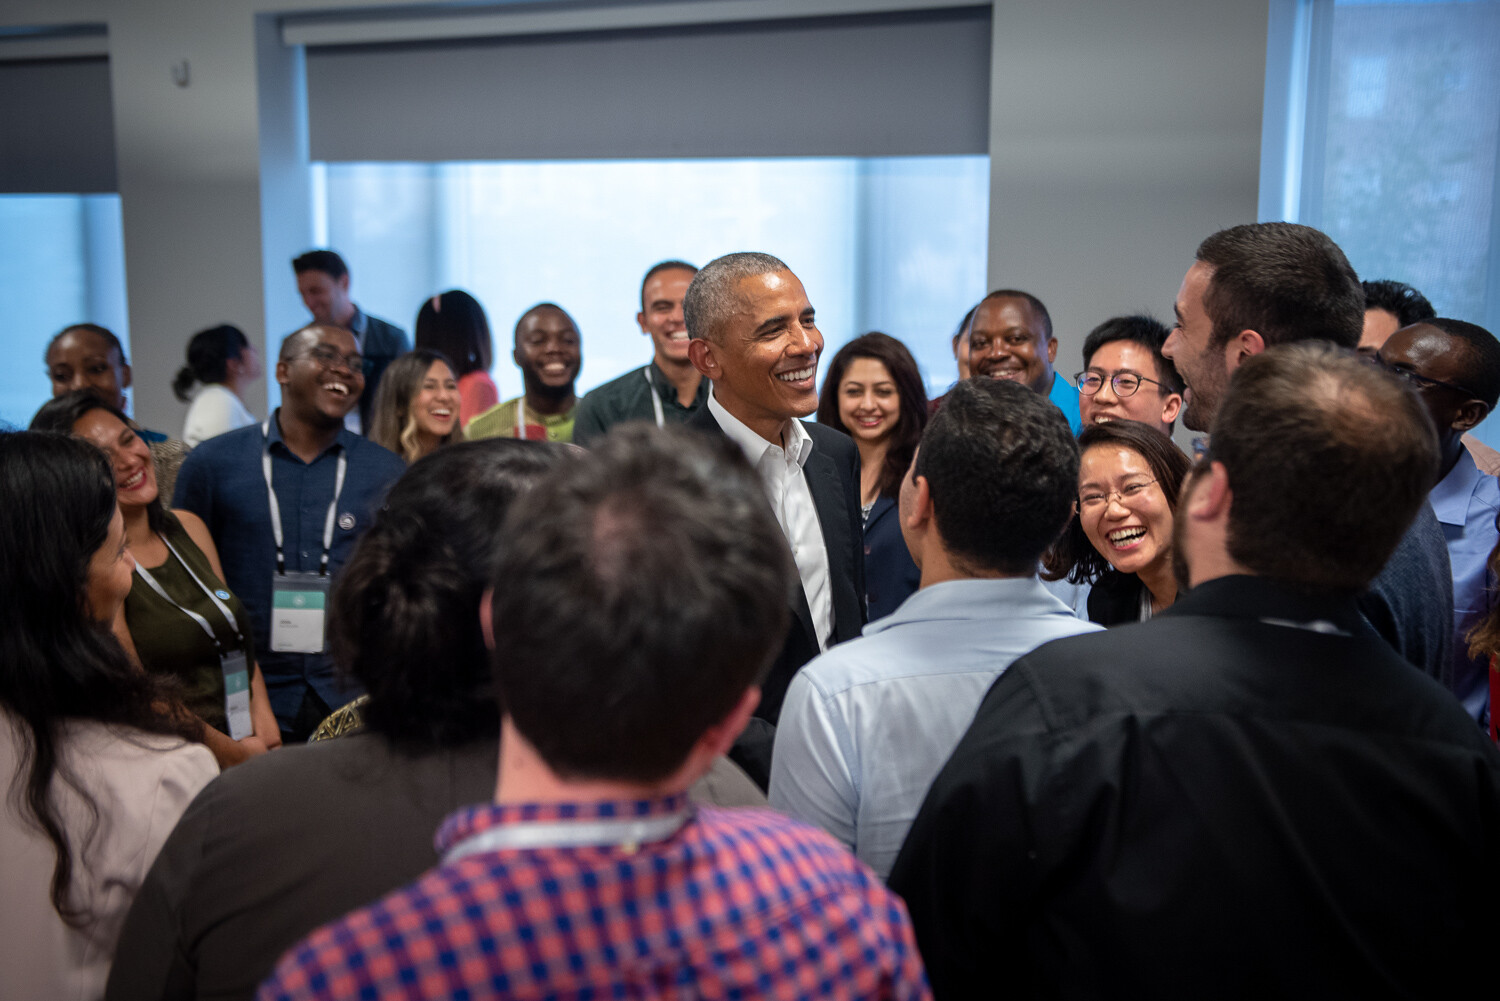 President Barack Obama talks with the inaugural class of Obama Scholars during their program kickoff retreat in Chicago, IL on Tuesday August 28, 2018.